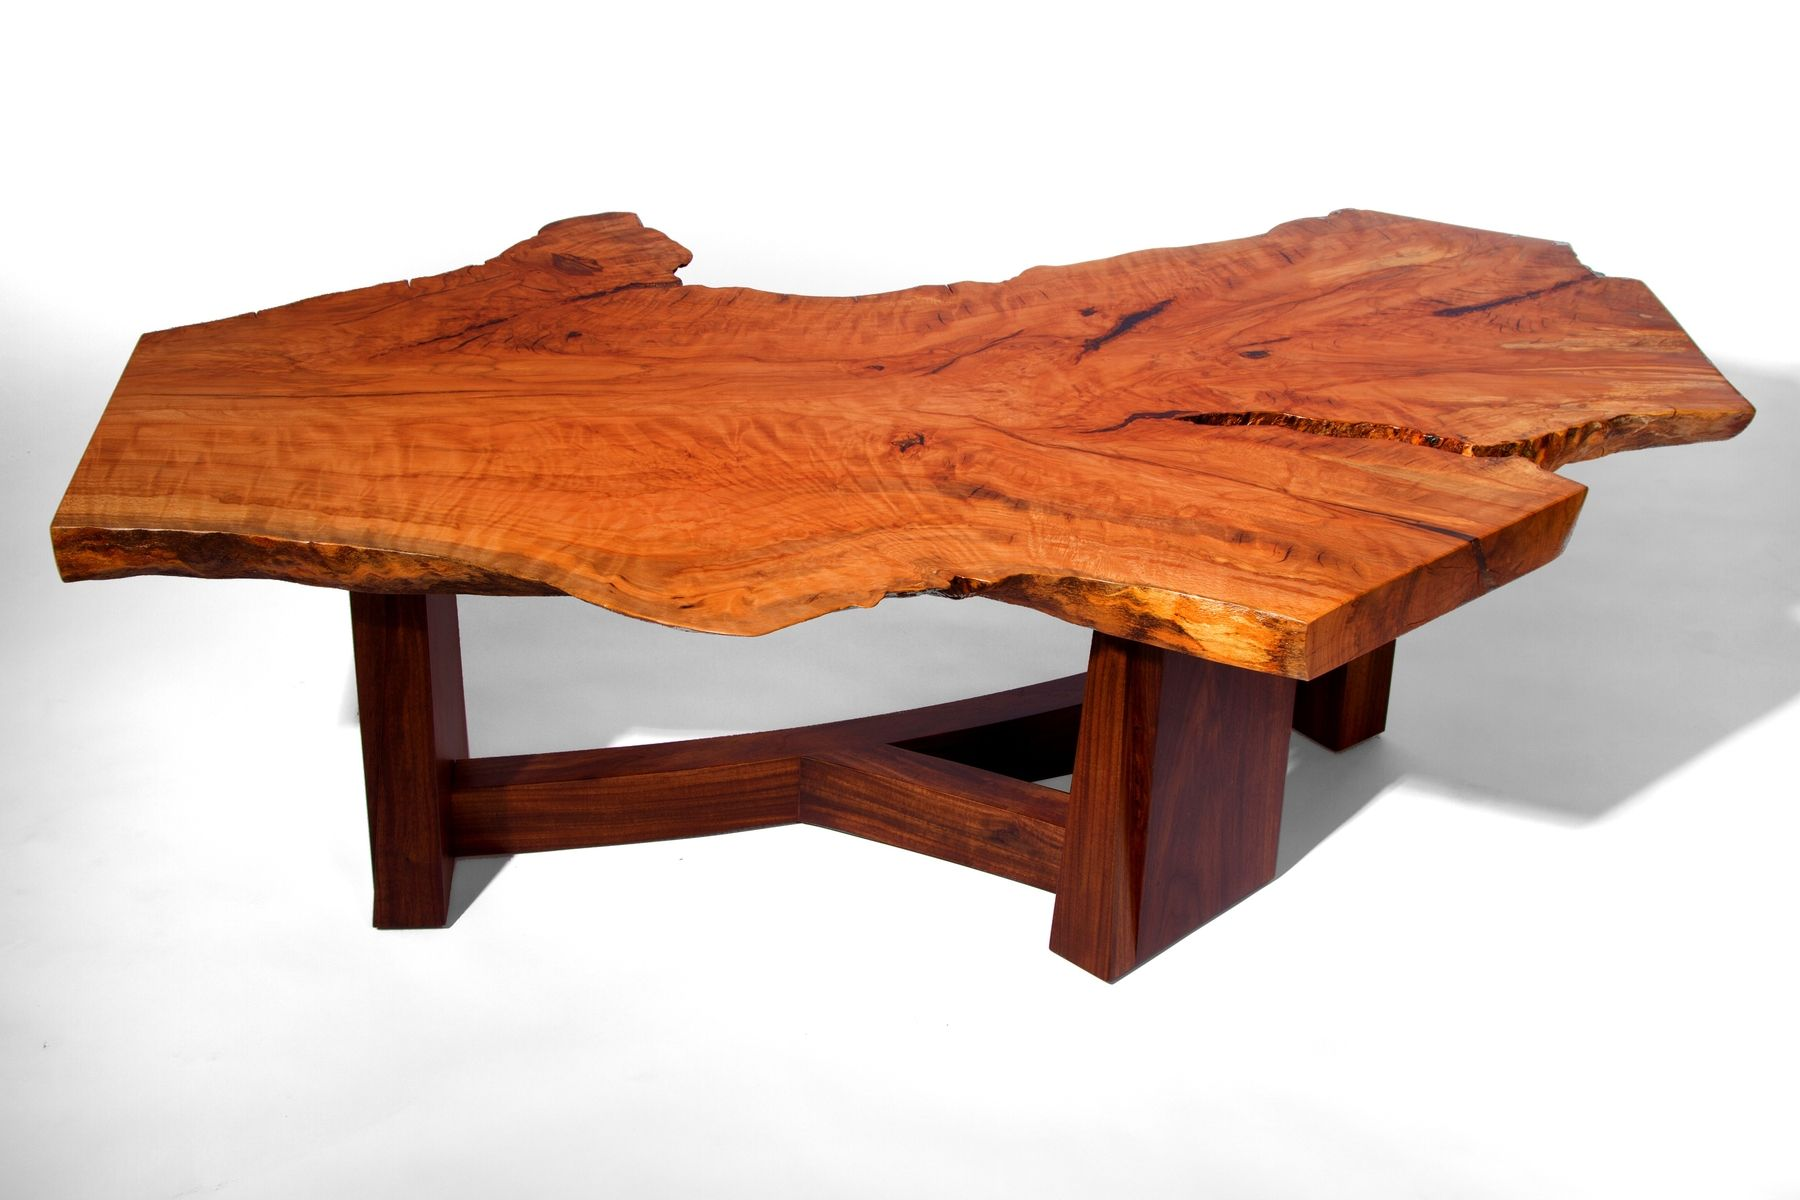 Design Tree Slice Table live edge wood furniture custommade com beech slab coffee table